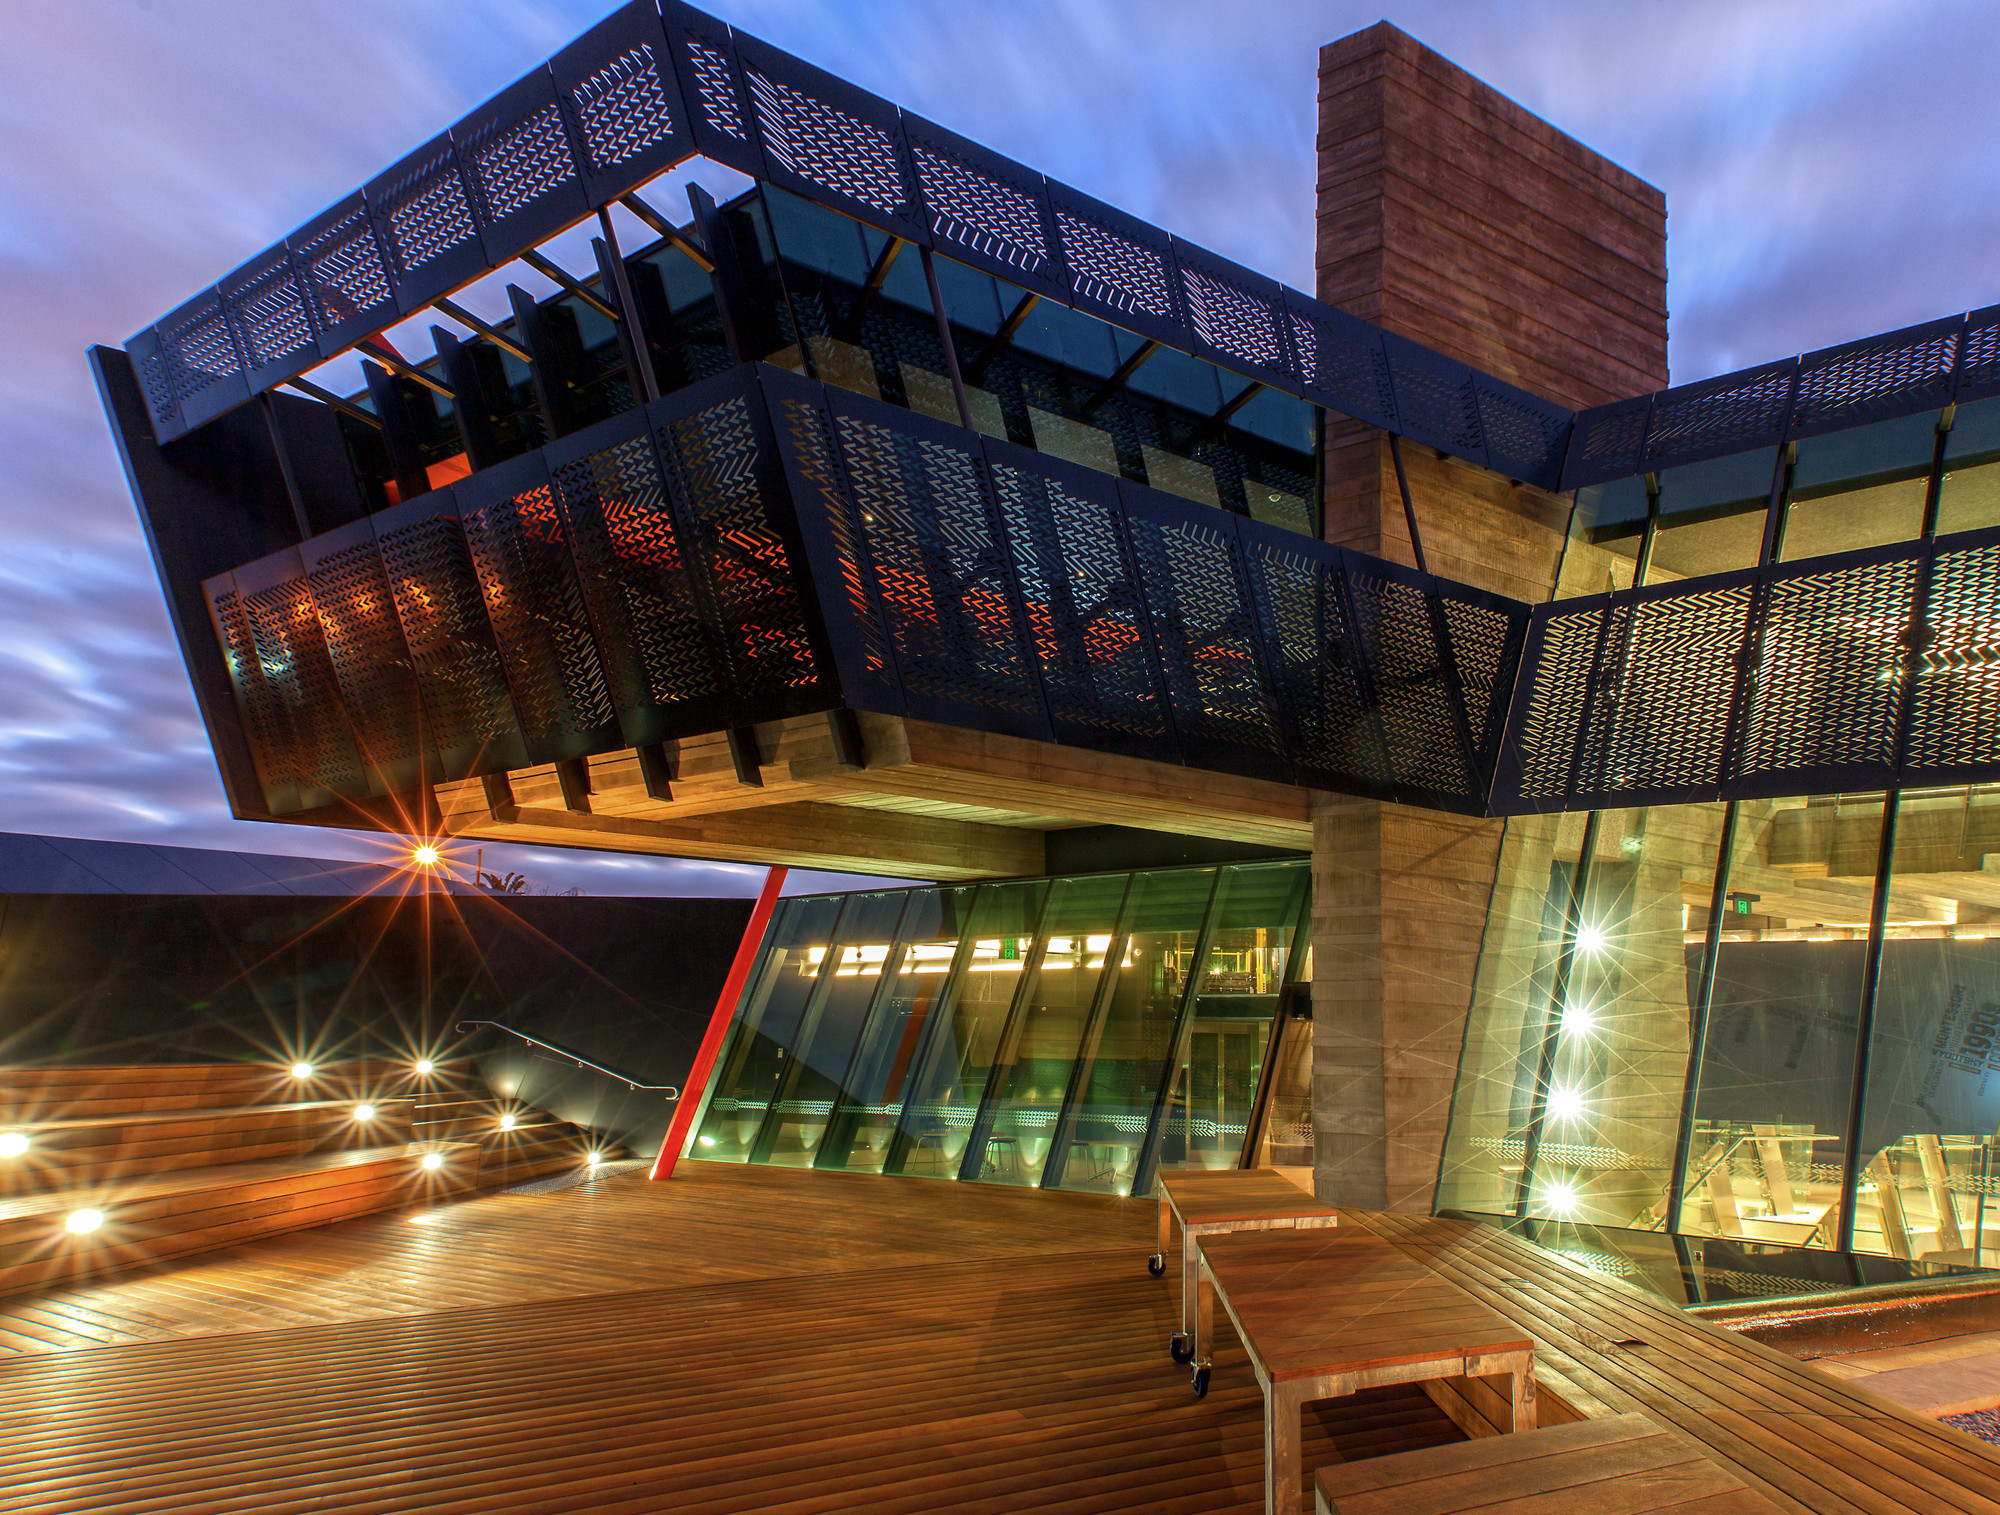 Bastow Institute of Educational Leadership / Maddison Architects, © William Watt